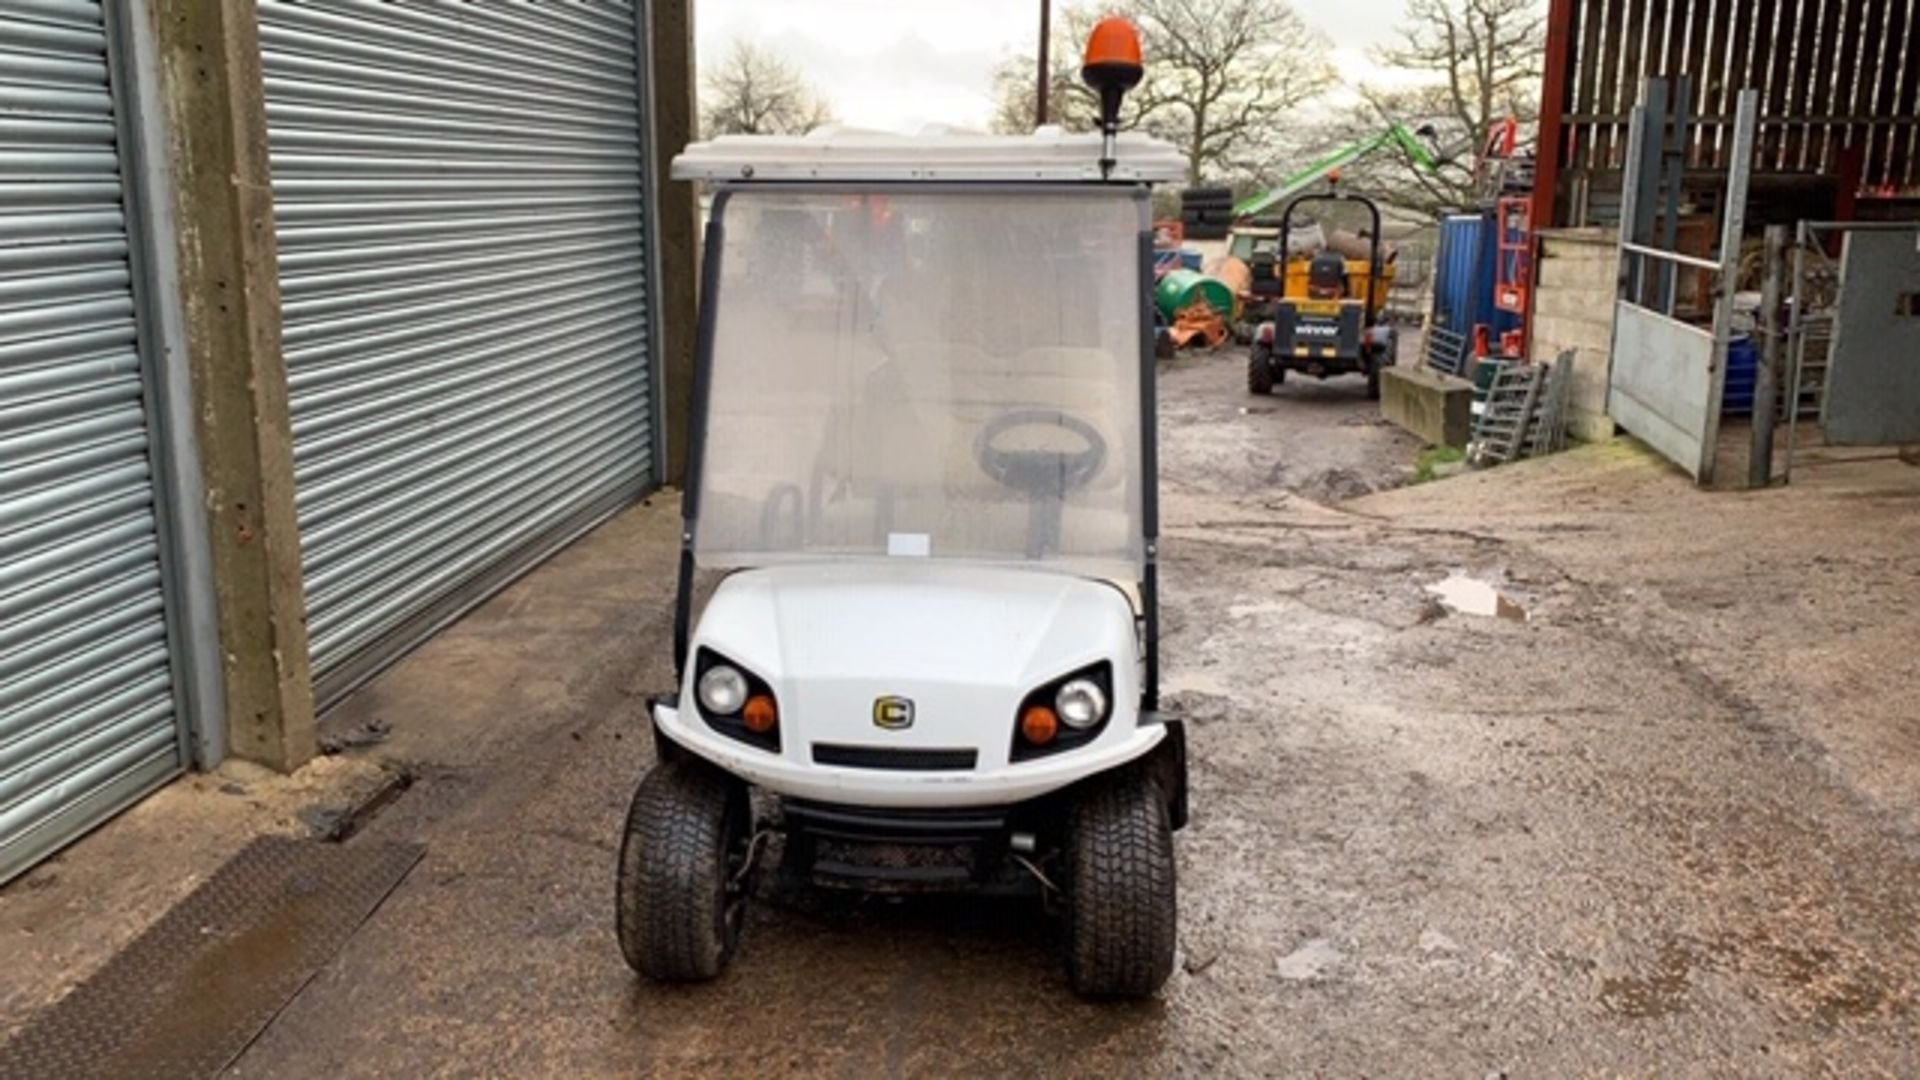 Lot 1 - CUSHMAN EZGO SHUTTLE 8 PETROL ENGINED 8 SEATER EVENTS GOLF BUGGY. YEAR 2017 BUILD. DIRECT FROM